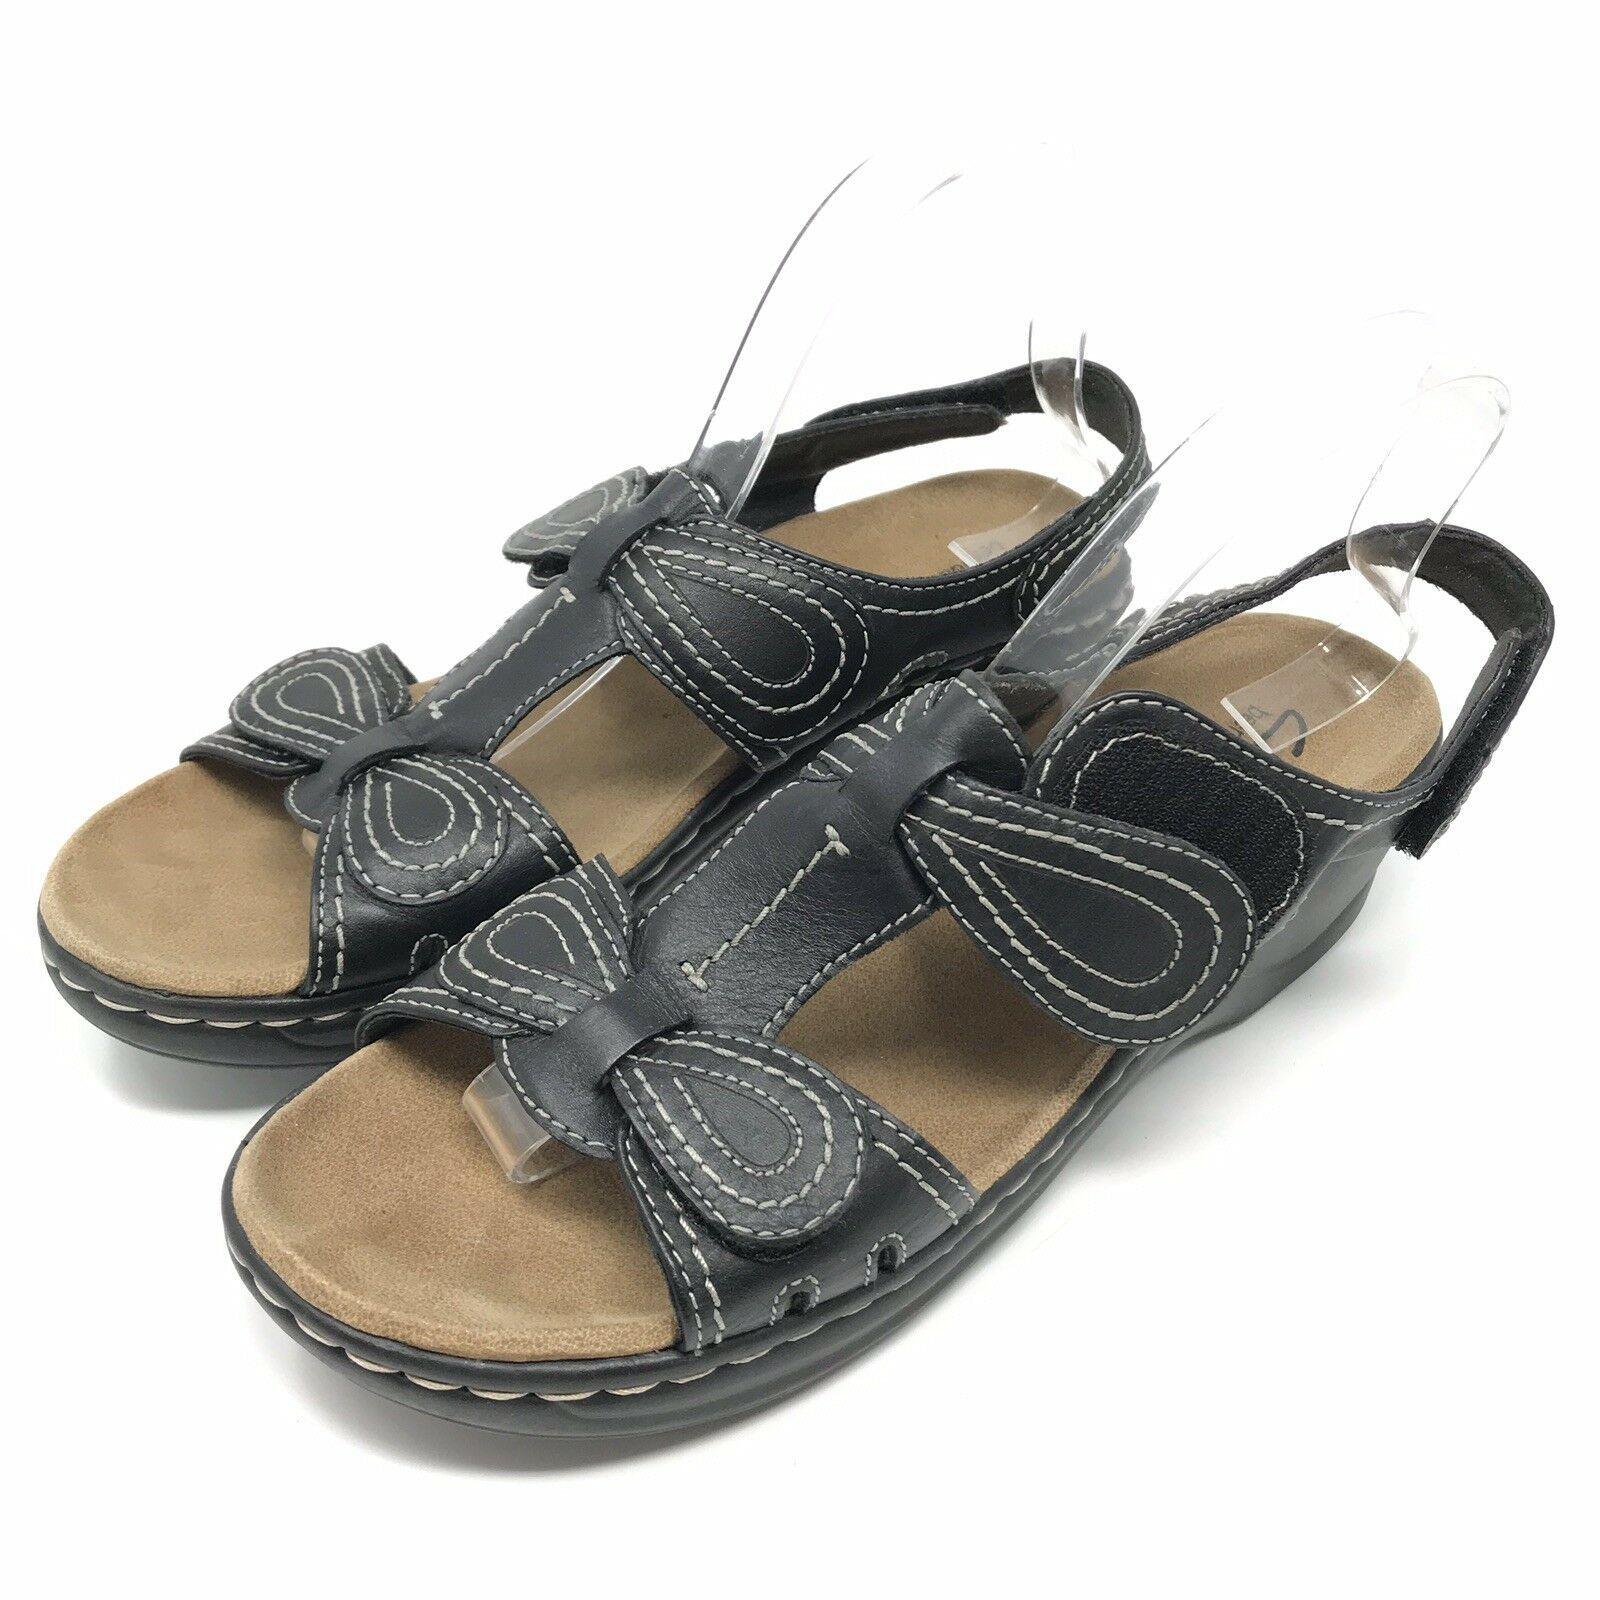 2a2fc11b67edab Clarks Bendables Womens Shoes Size 10 Black Leather Comfort Sandals Open  Toe -  14.84